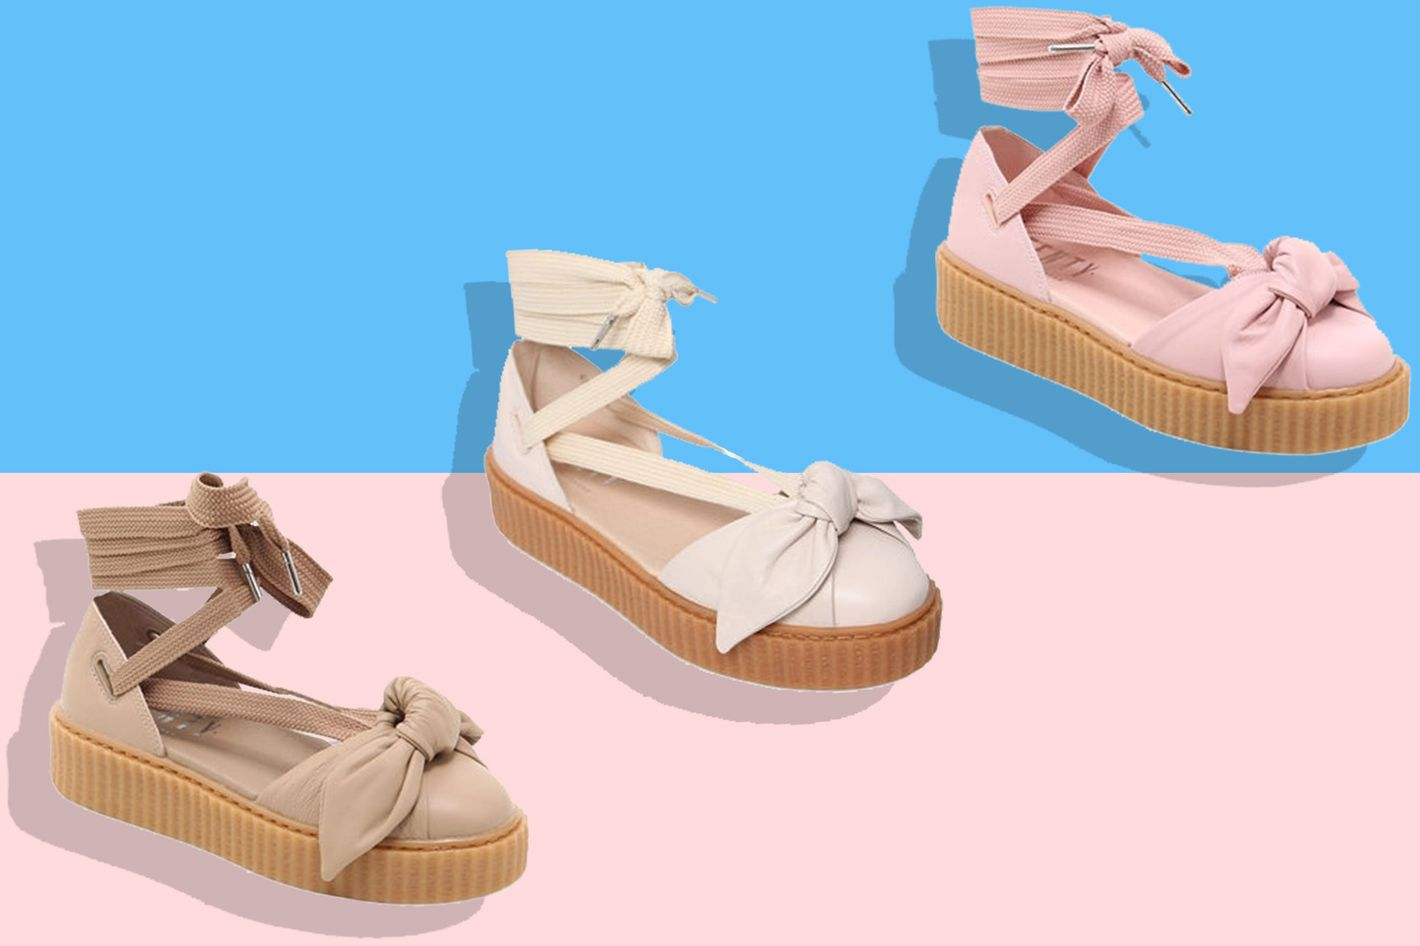 on sale 23b67 a7ddb On Sale: Fenty x Puma Shoes